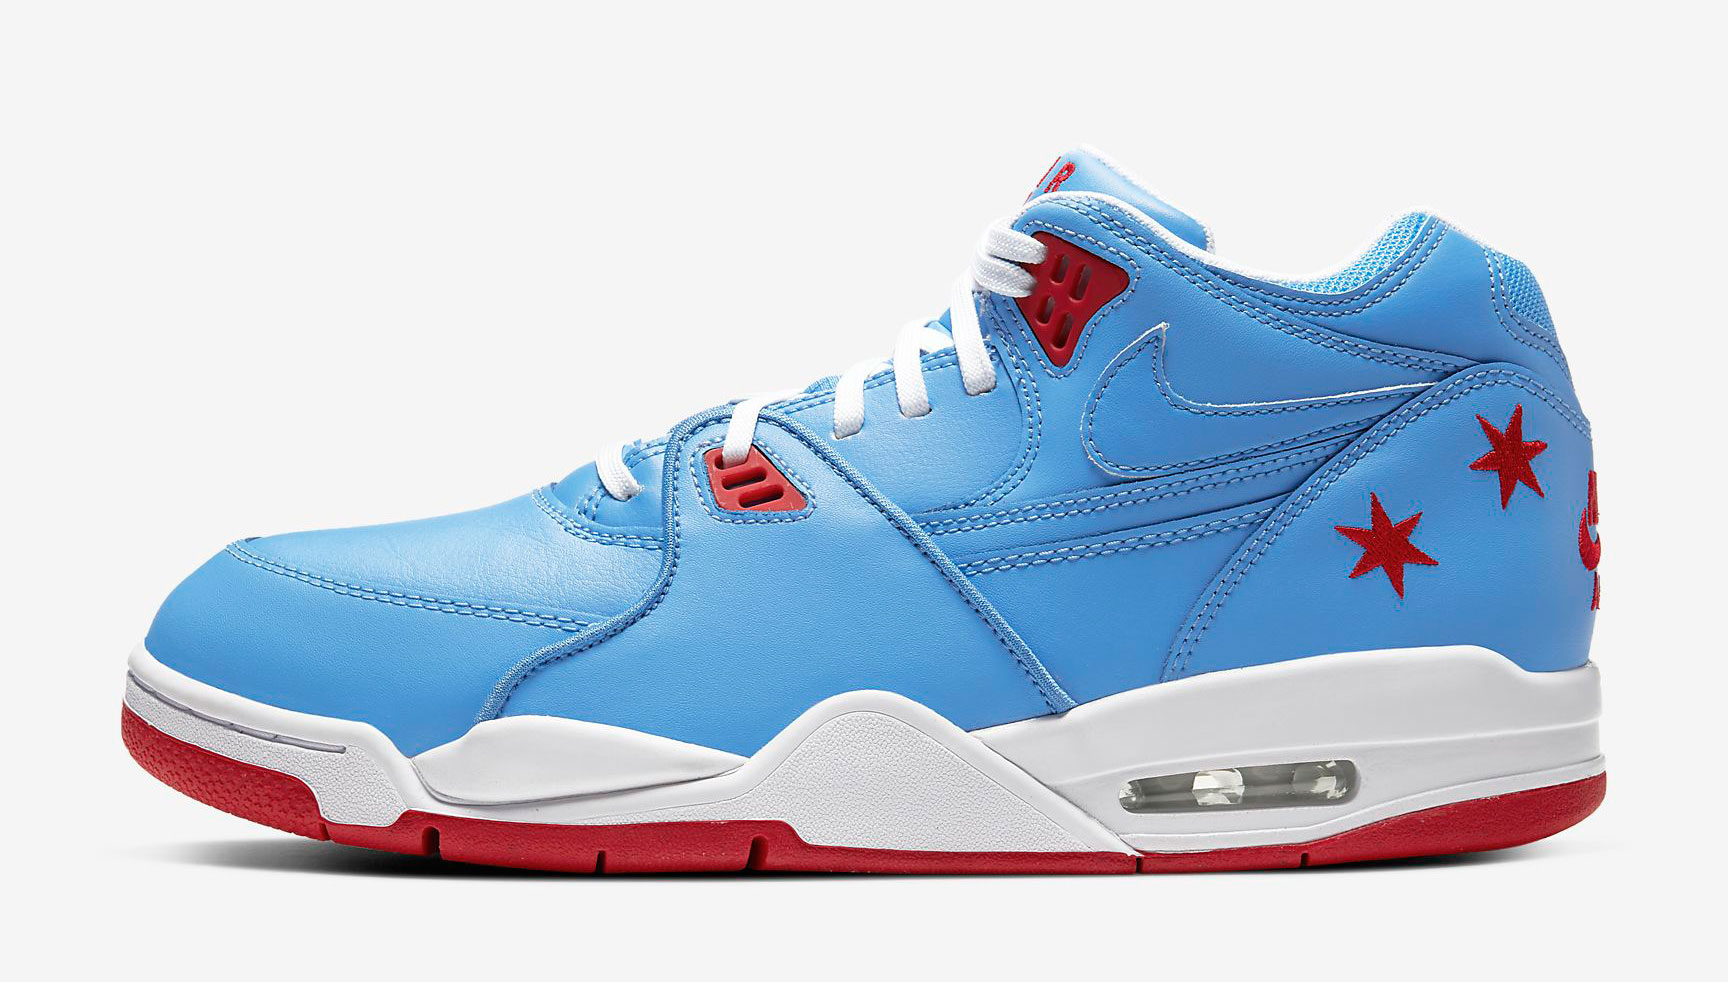 nike-air-flight-89-chicago-release-date